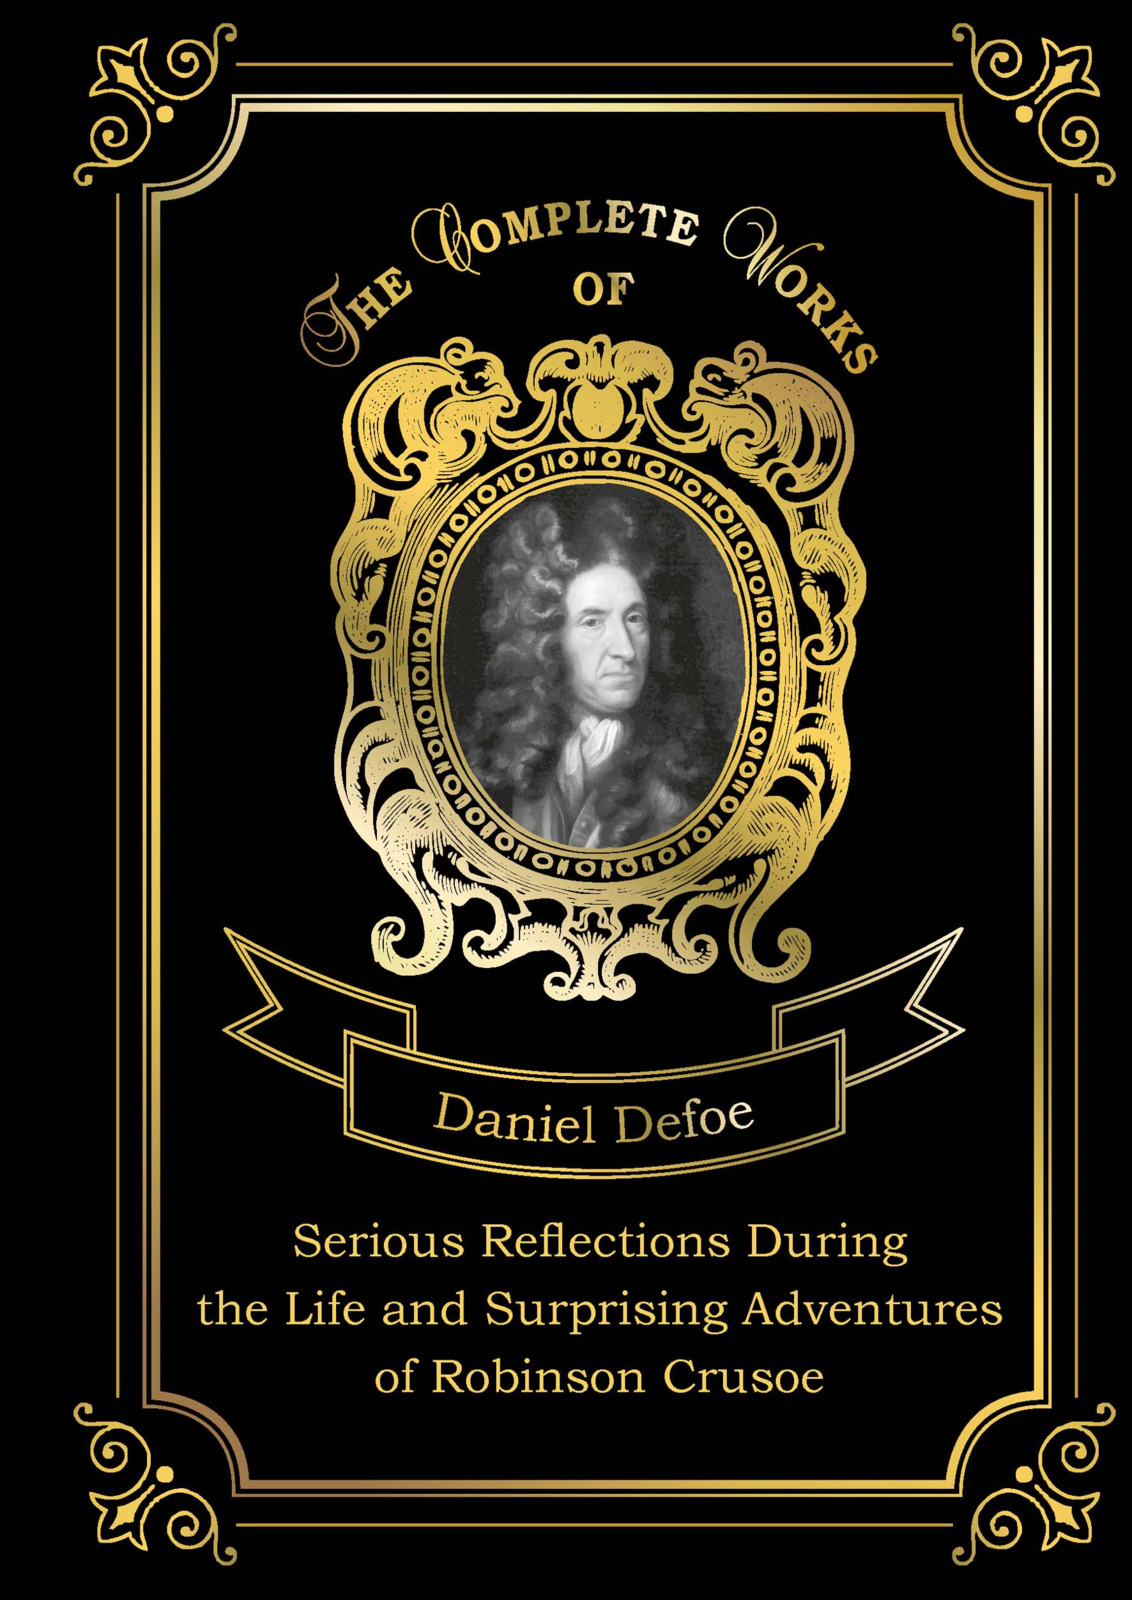 купить Daniel Defoe Serious Reflections During the Life and Surprising Adventures of Robinson Crusoe недорого